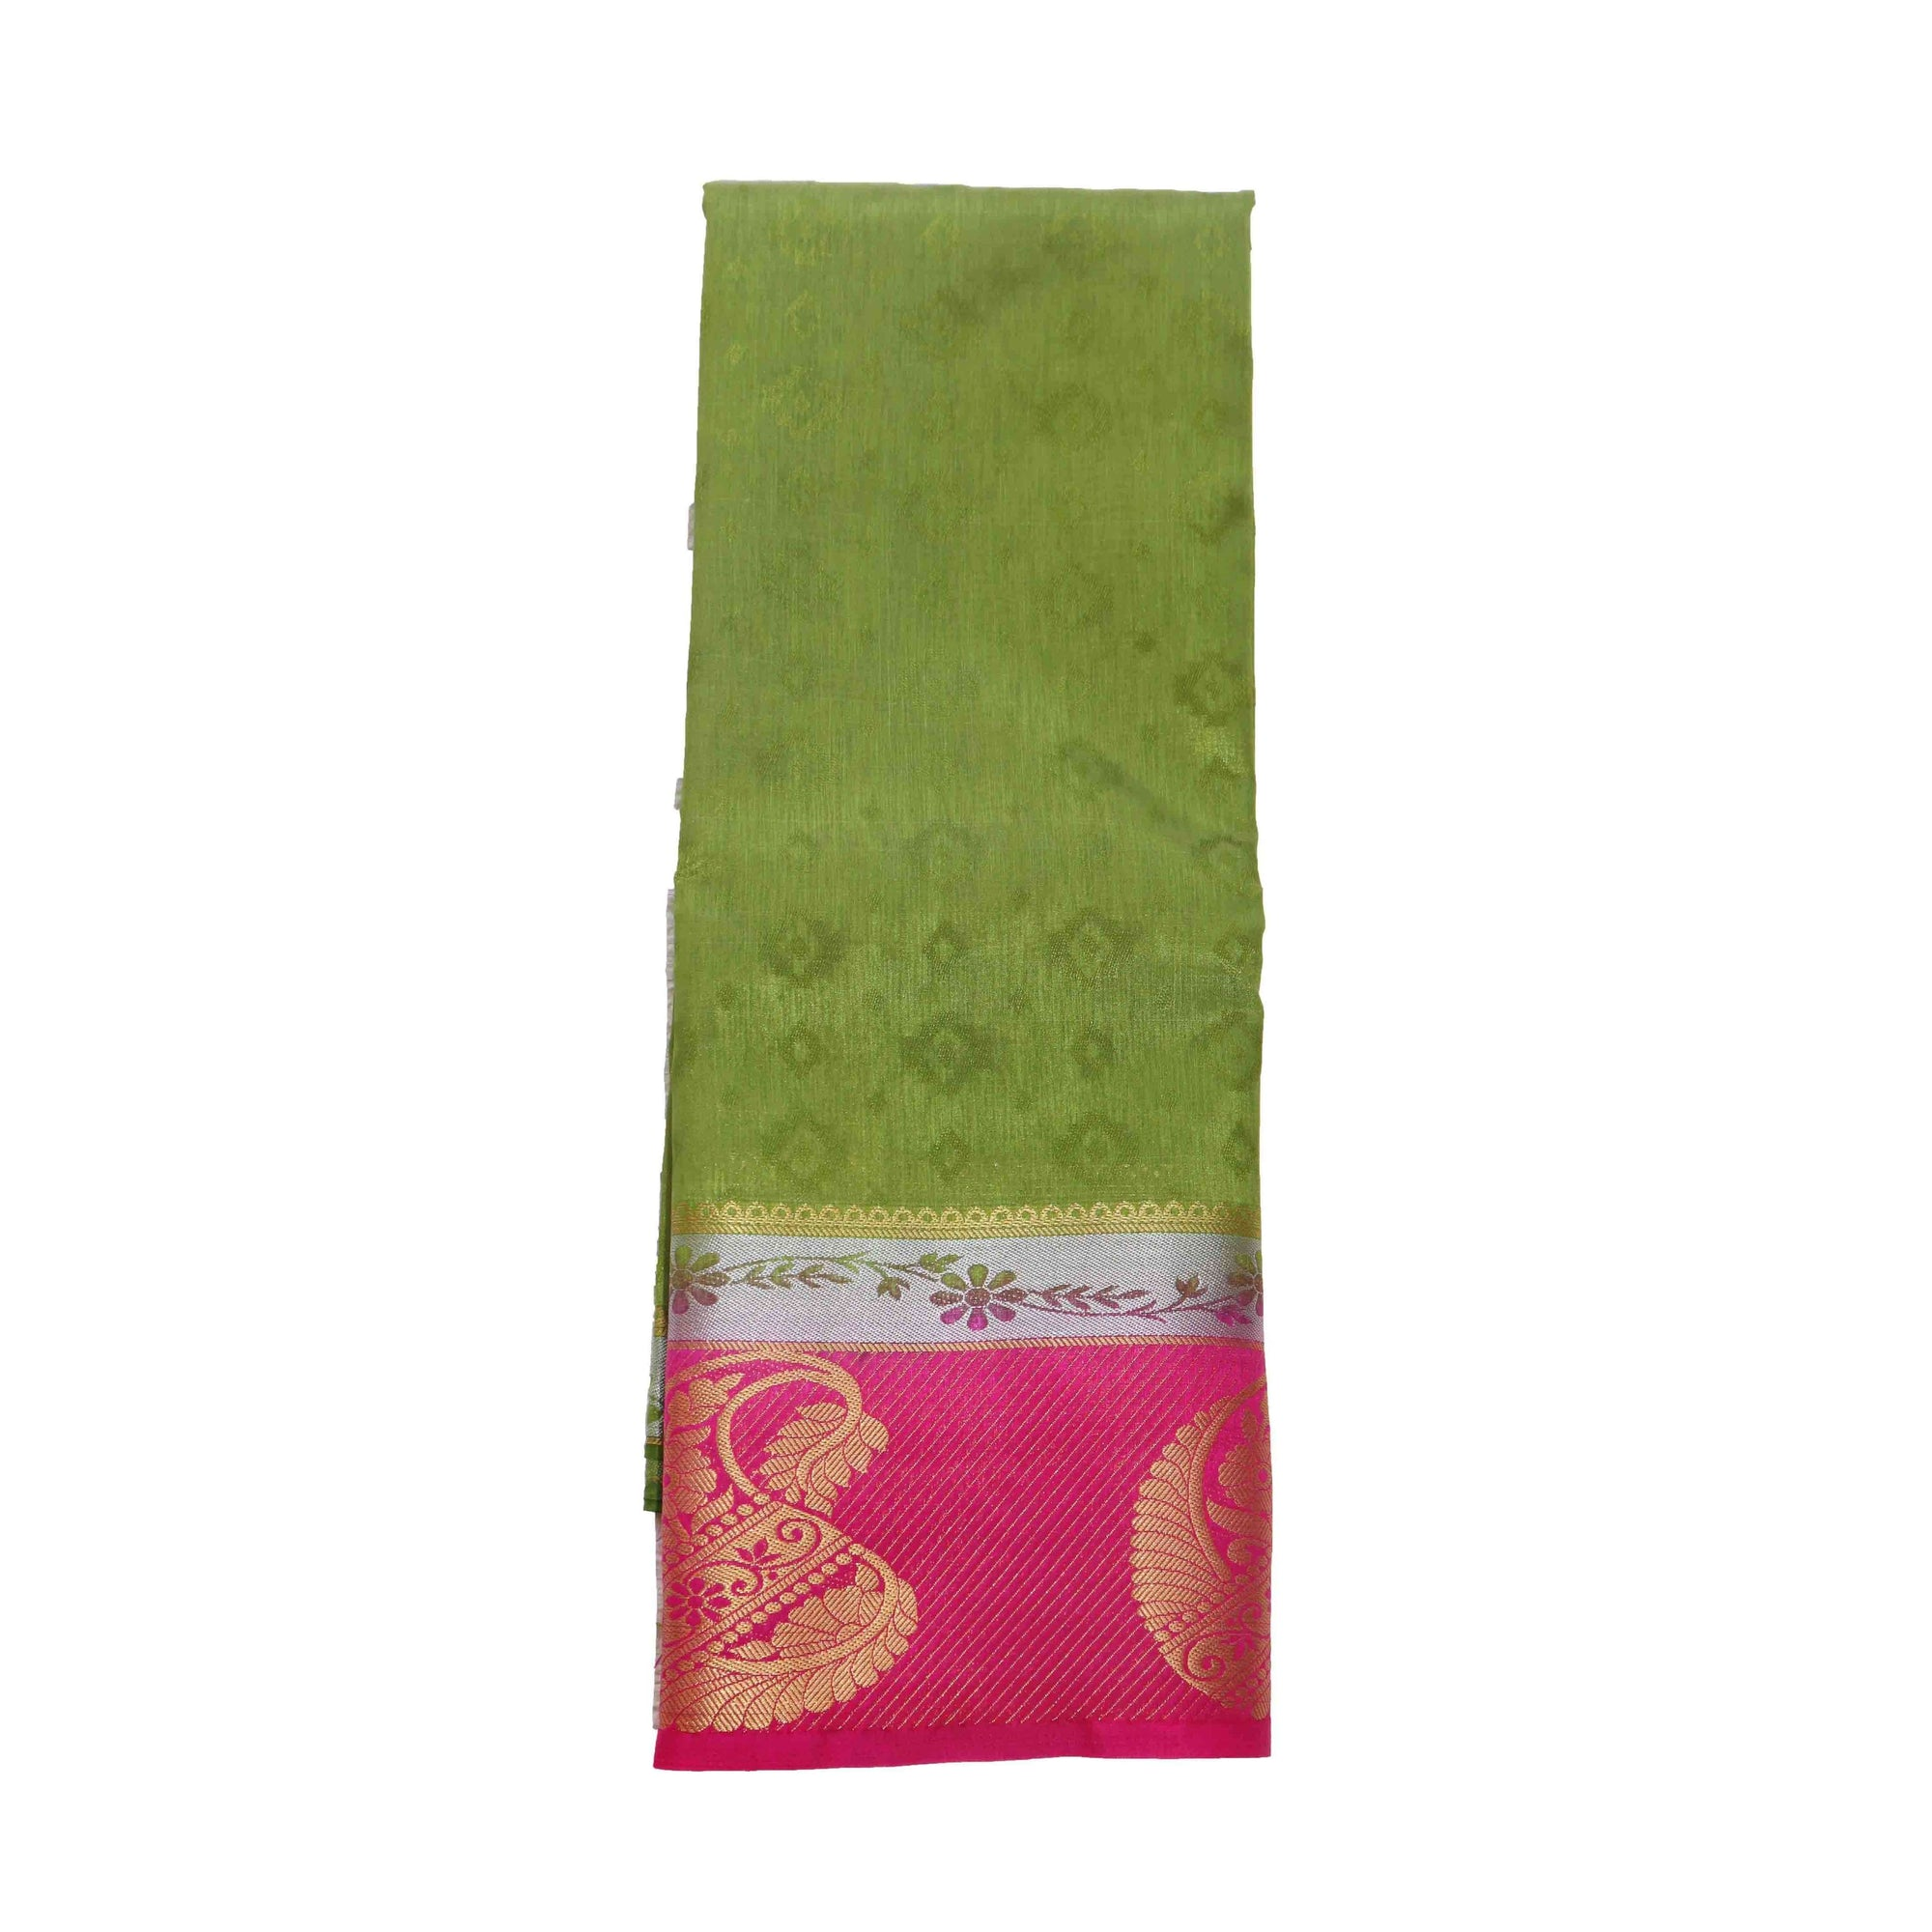 arars Women's kanchipuram kanjivaram pattu kanjivaram embosed plain silk saree with blouse (471, olive)